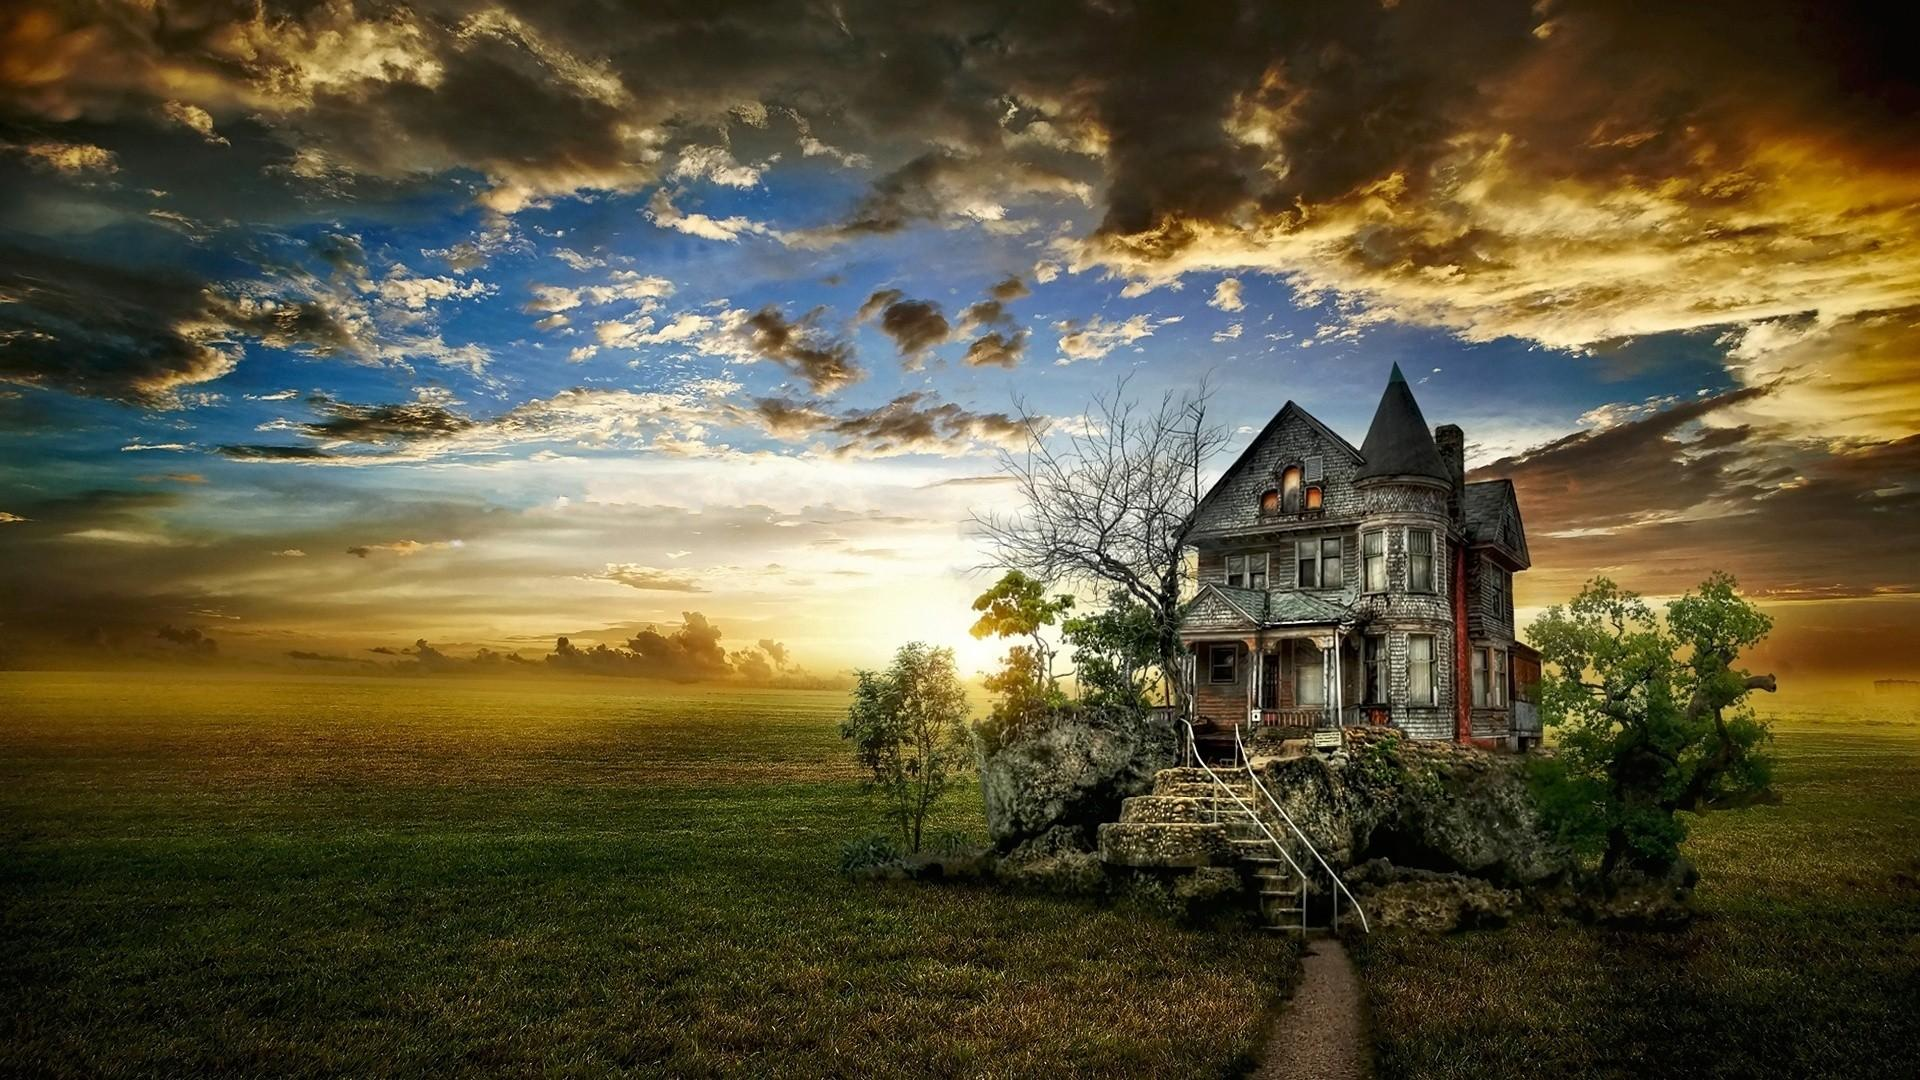 Lonely old house In the middle of the field wallpaper